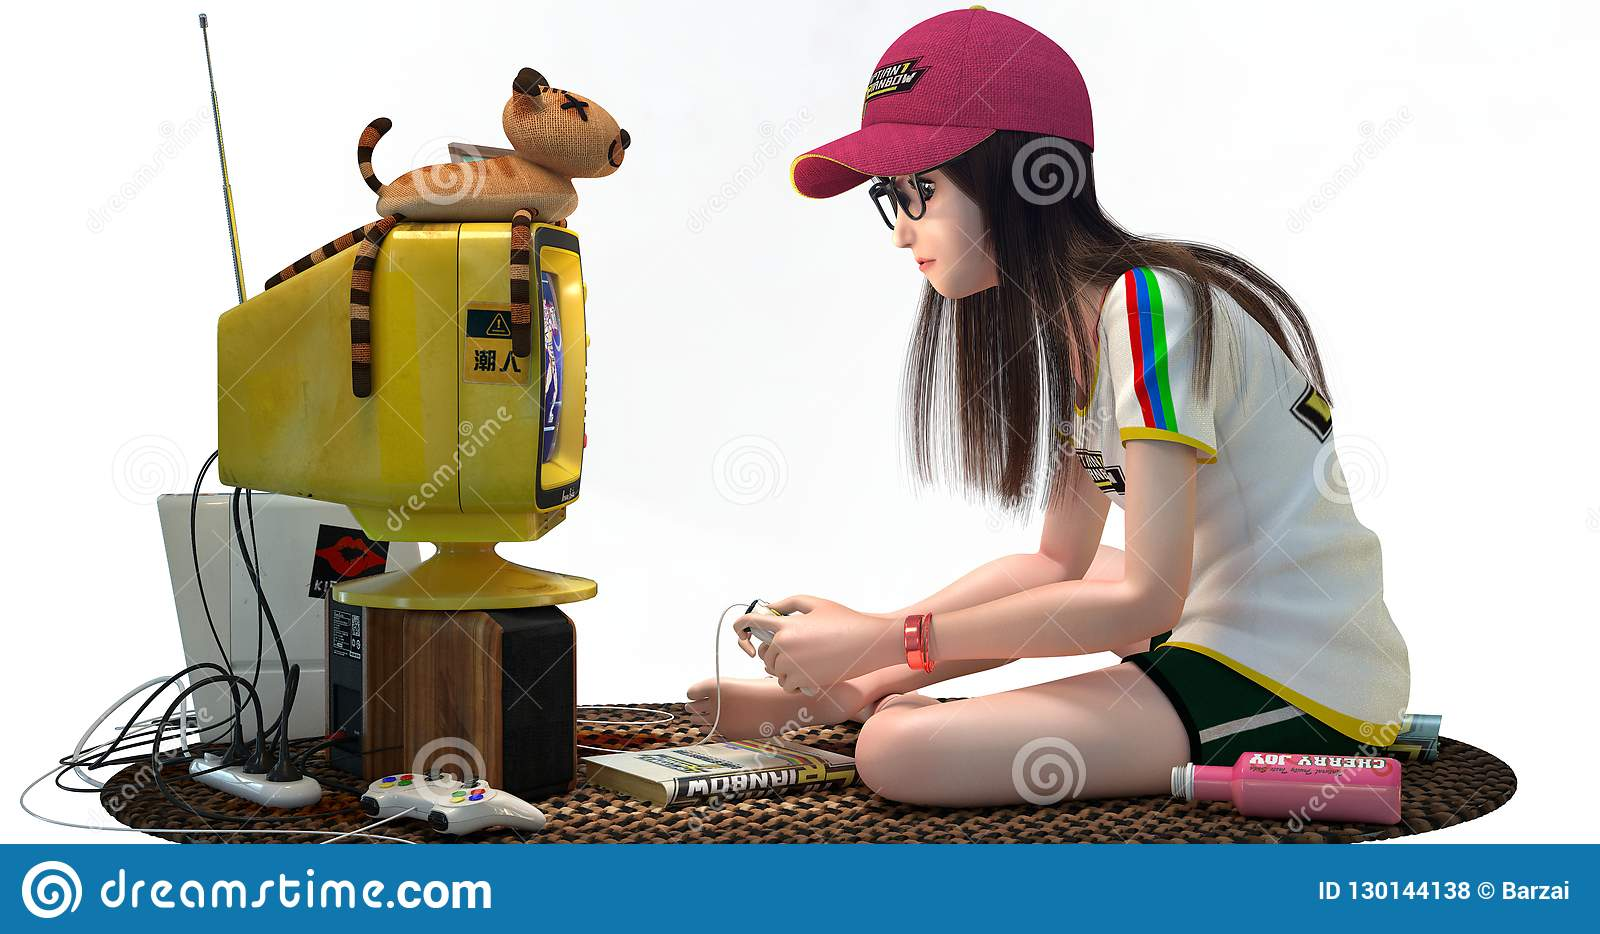 Scene with a geek girl playing video games.